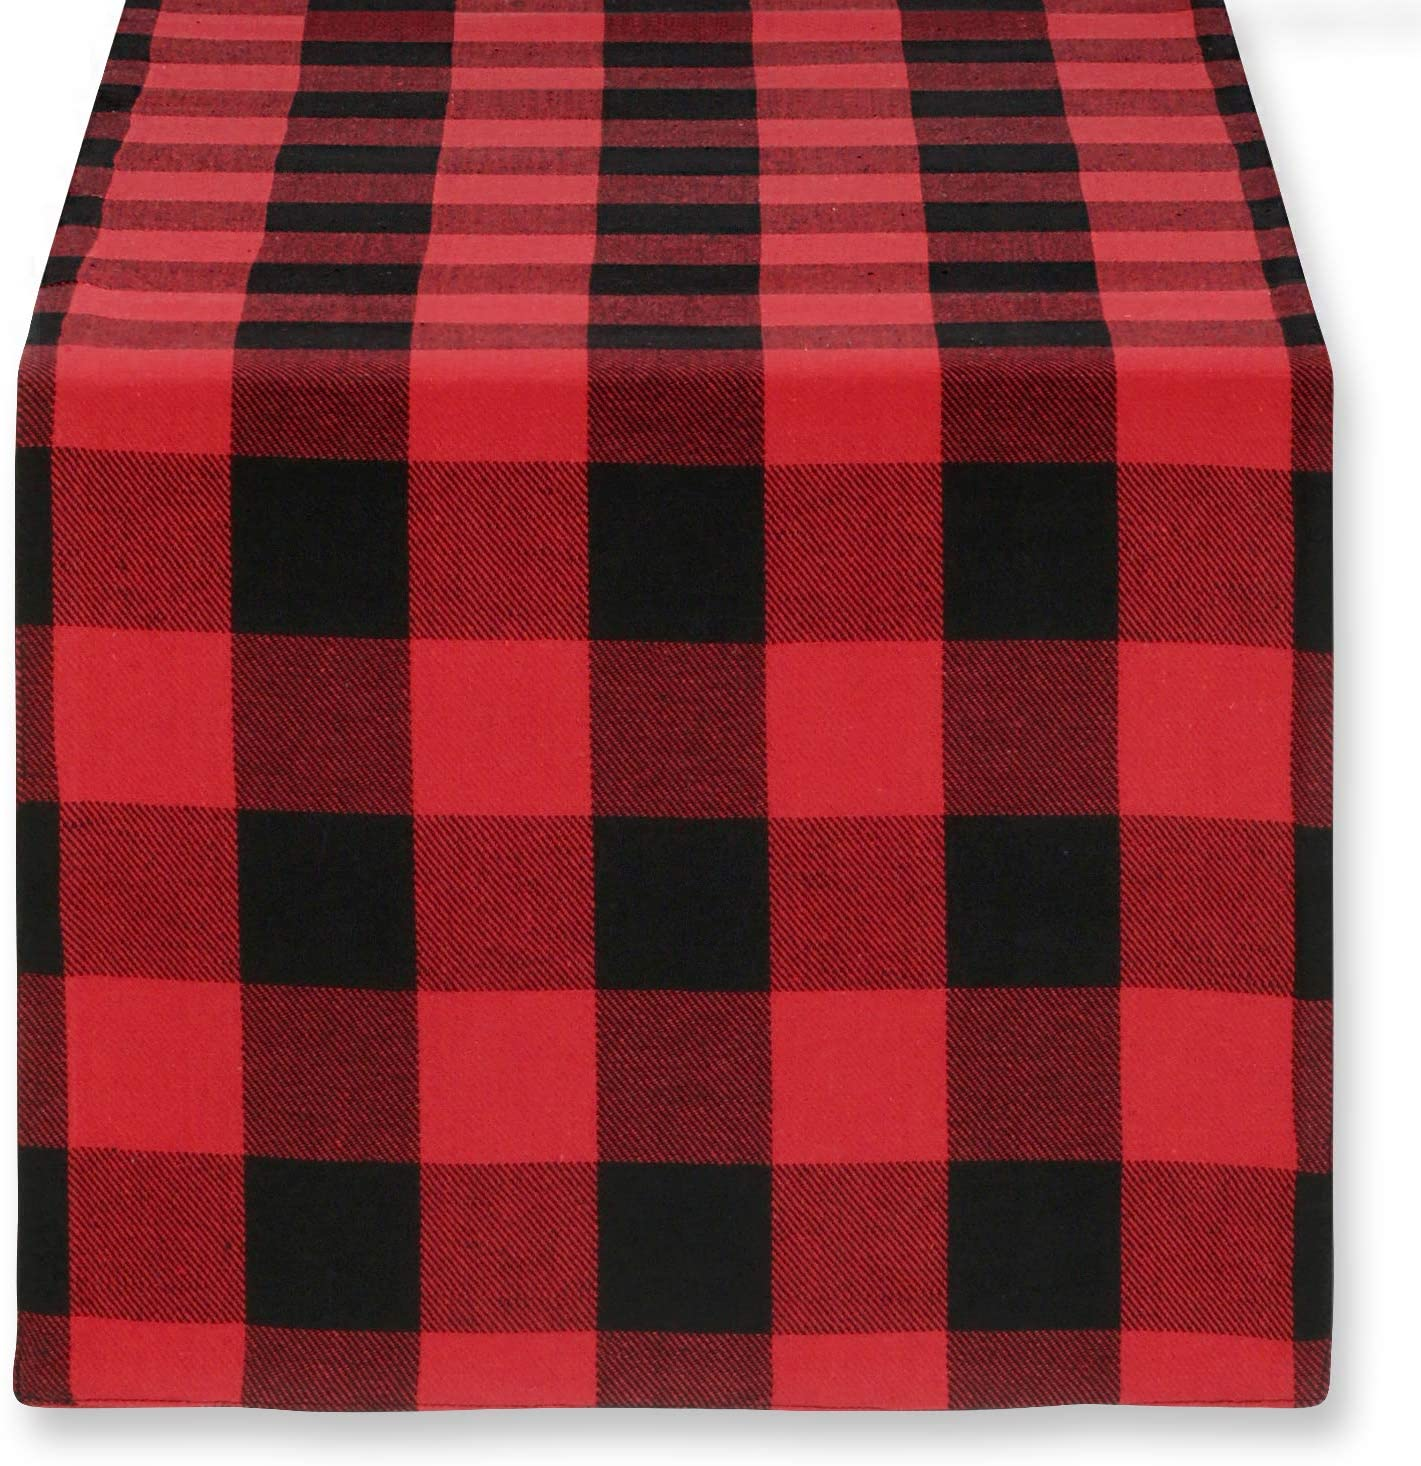 Cackleberry Home Red and Black Buffalo Check Woven Fabric Table Runner Reversible 14 x 108 Inches